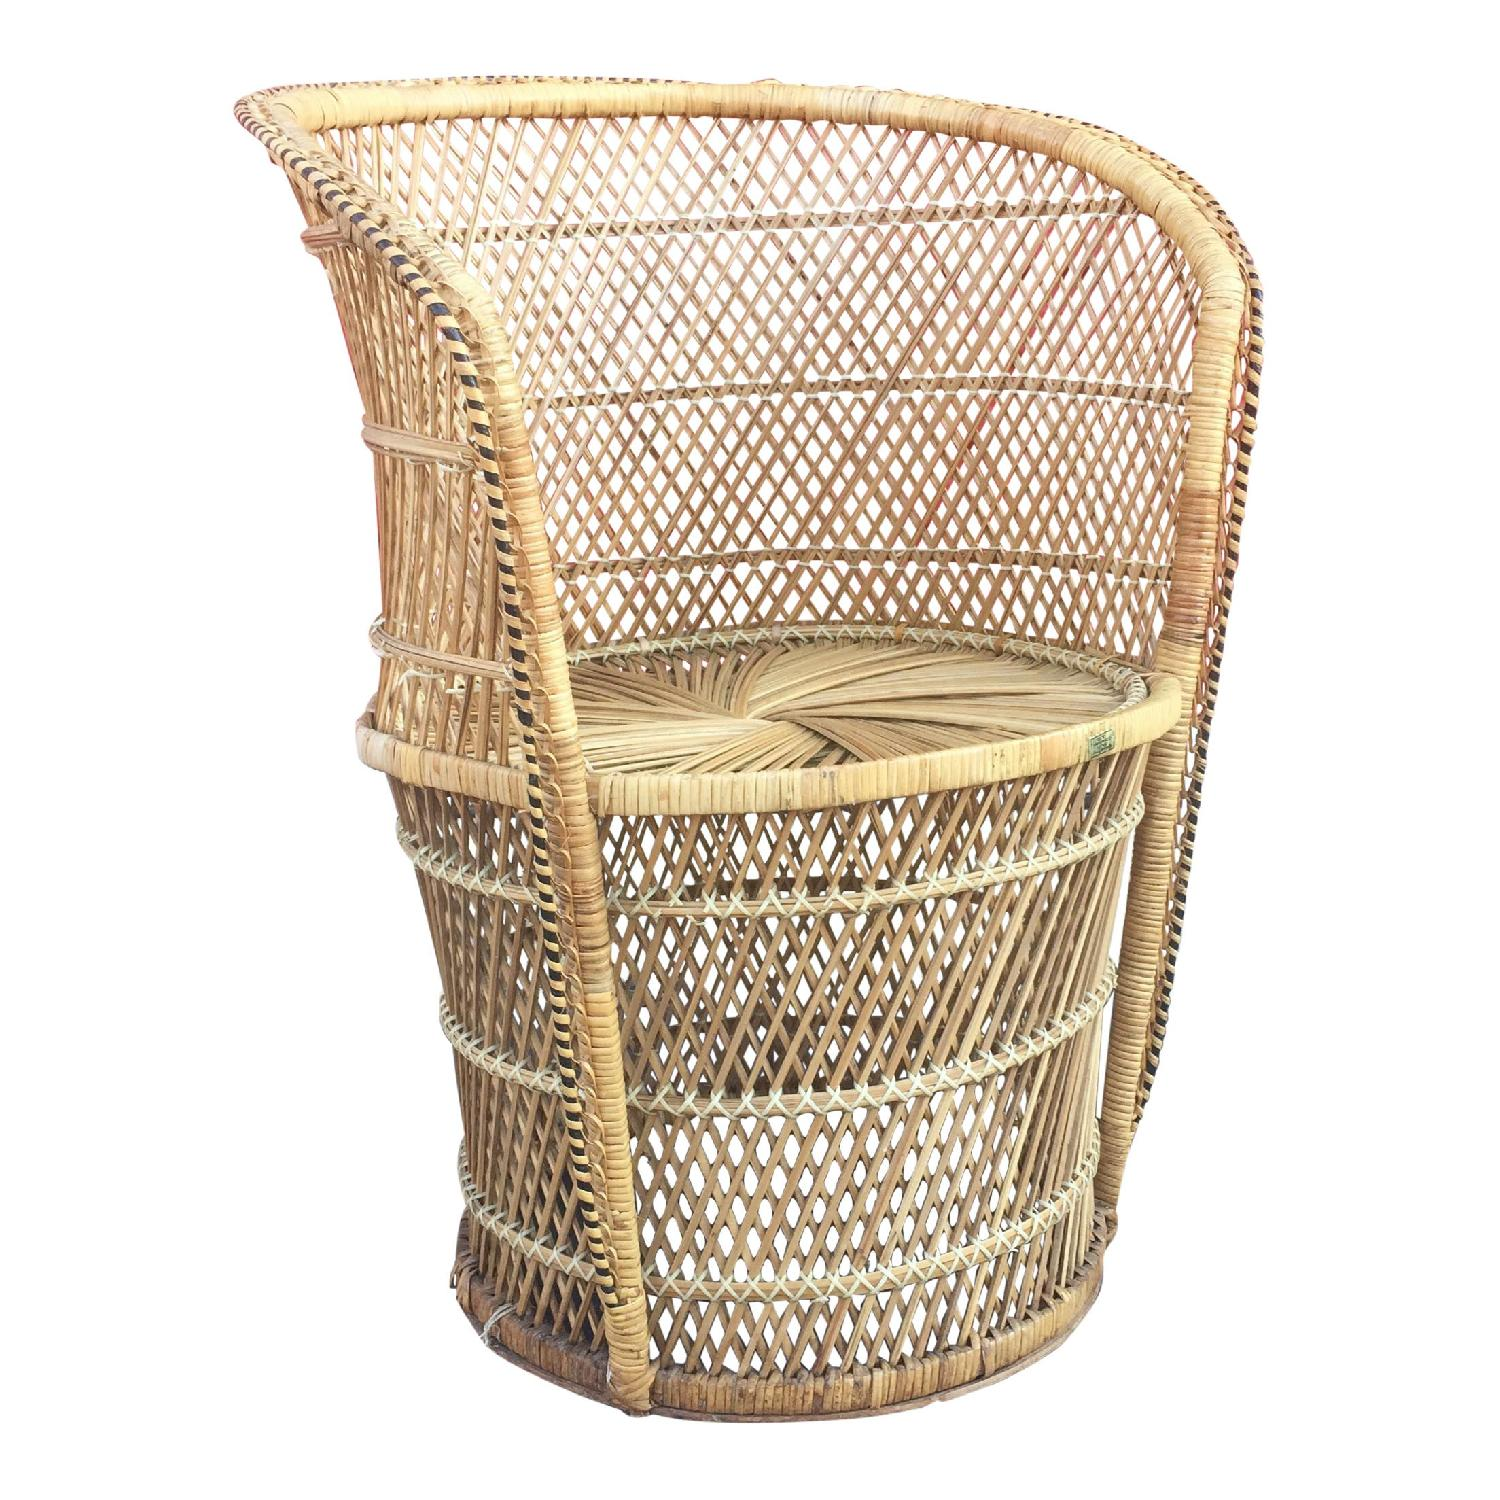 Vintage Wicker Low Throne Chair - image-0